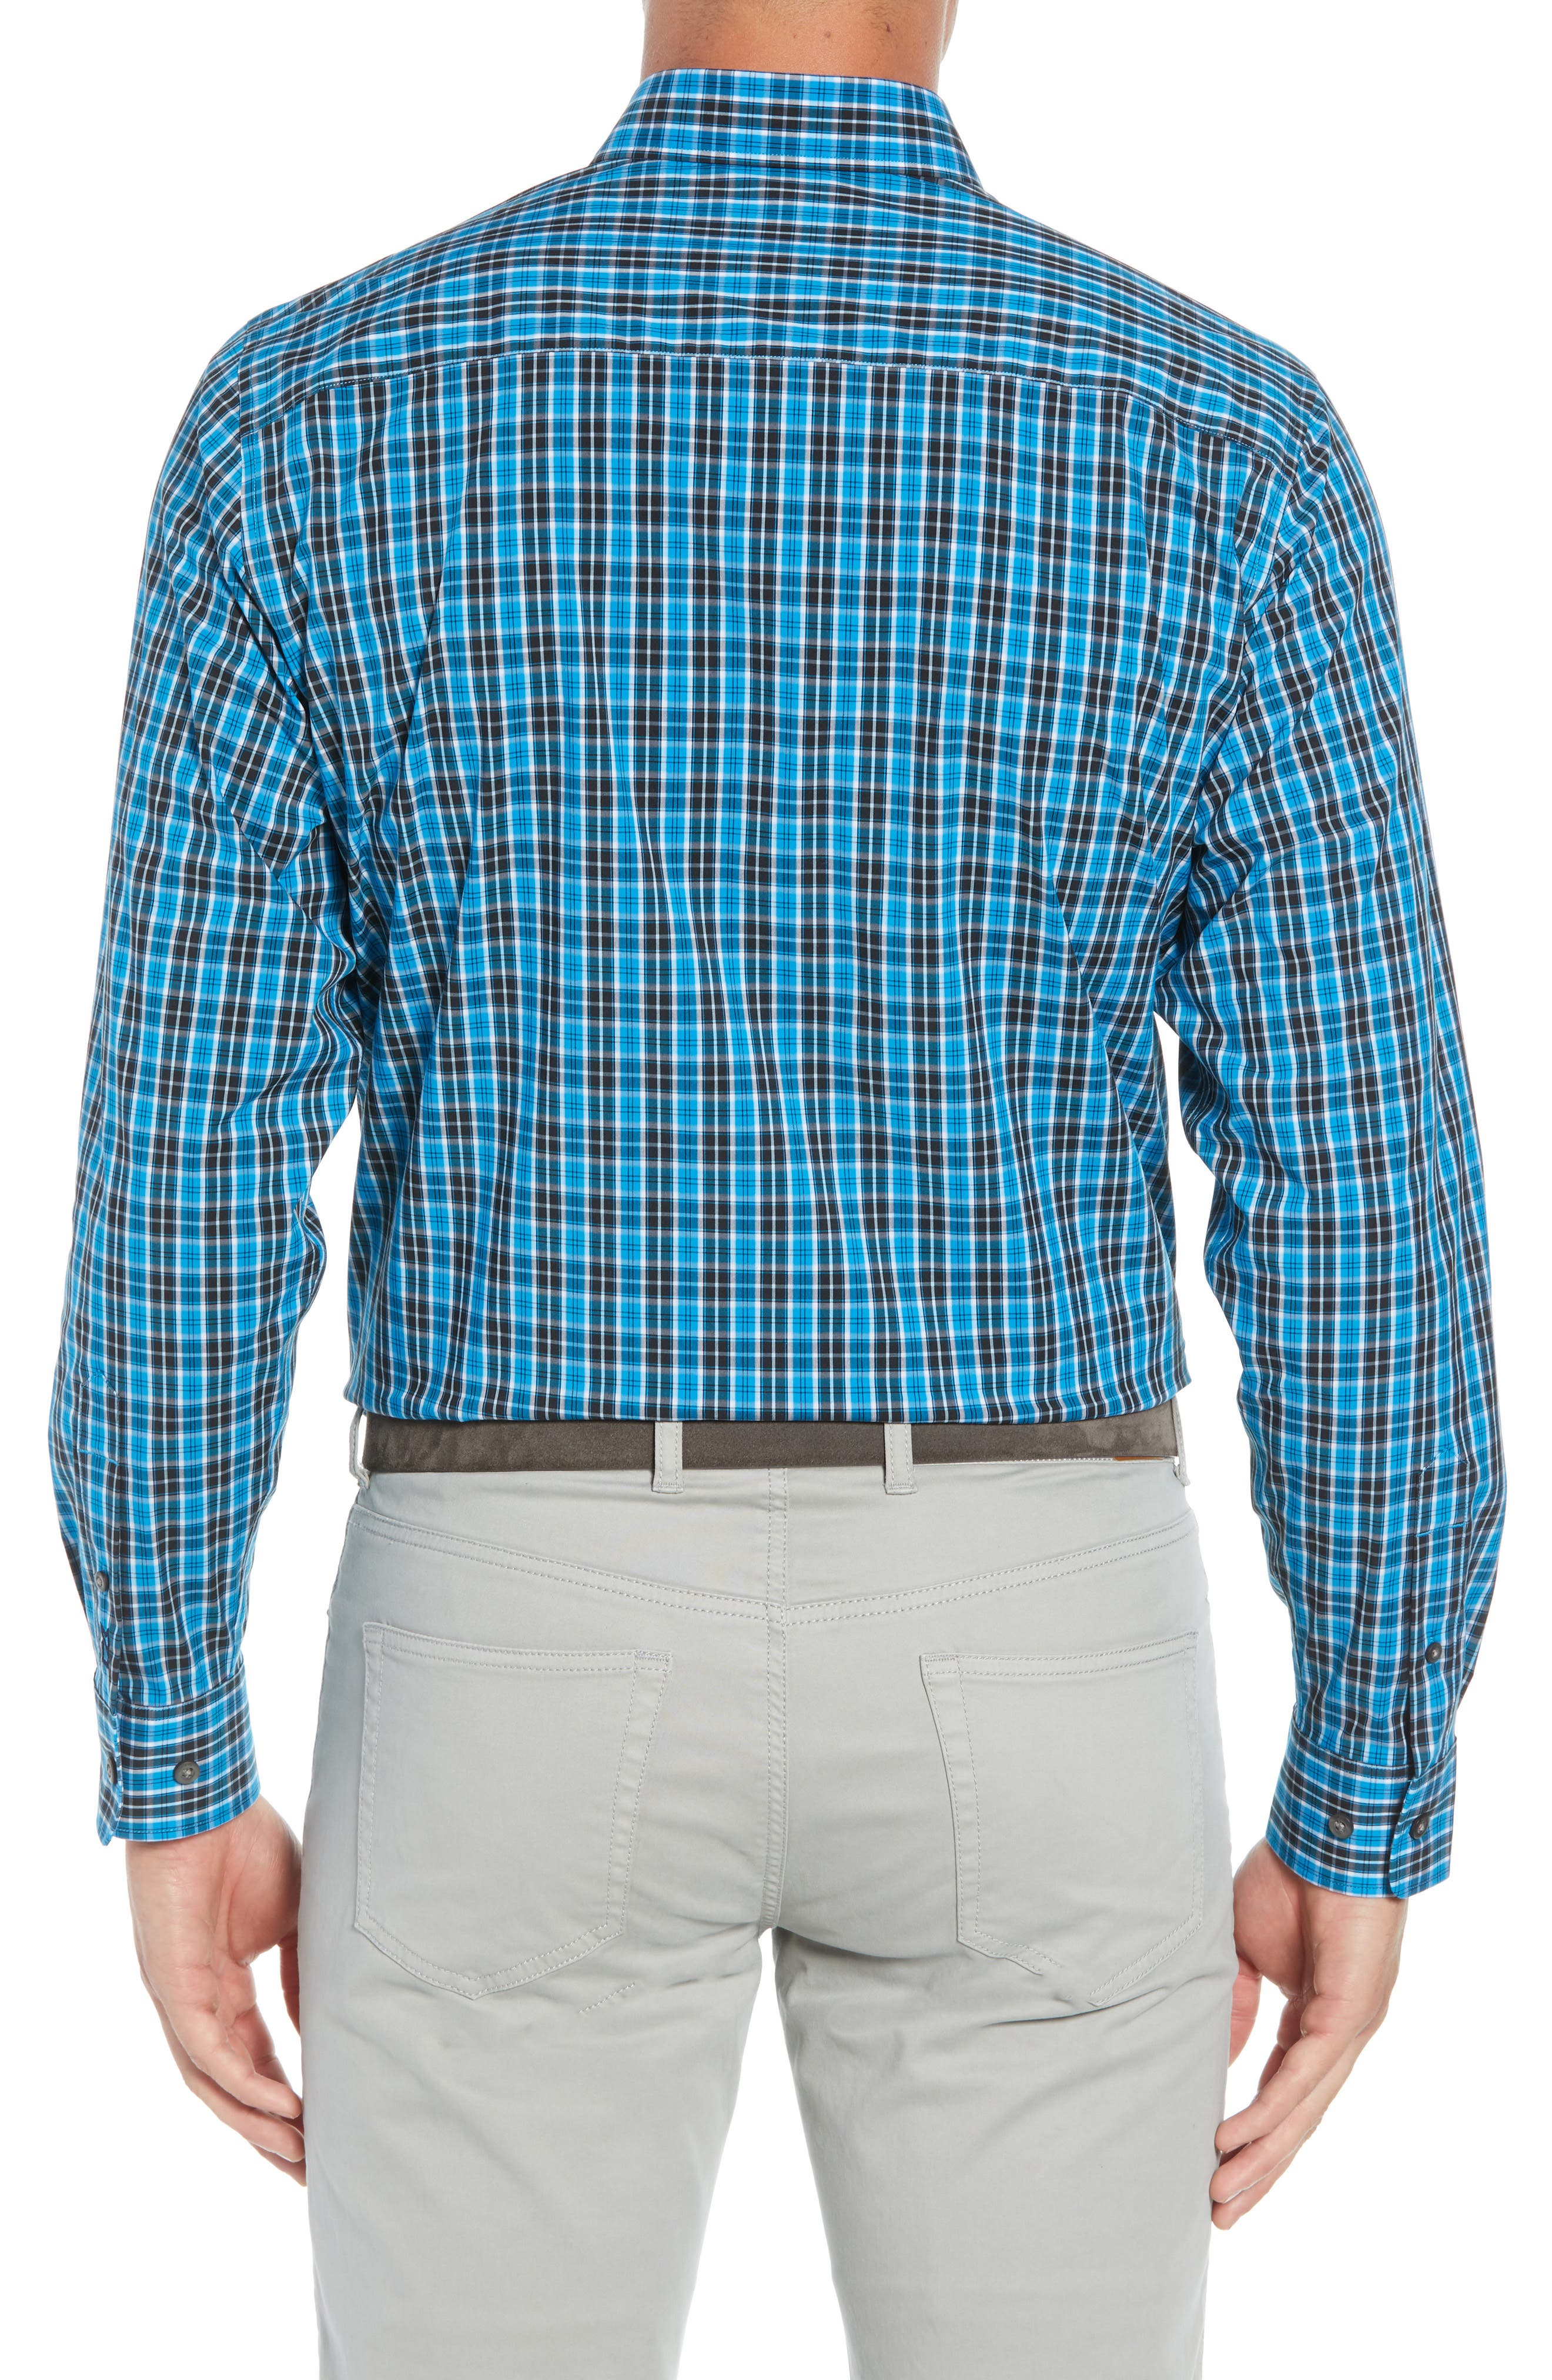 Ronald Regular Fit Plaid Performance Sport Shirt,                             Alternate thumbnail 3, color,                             ORBIT